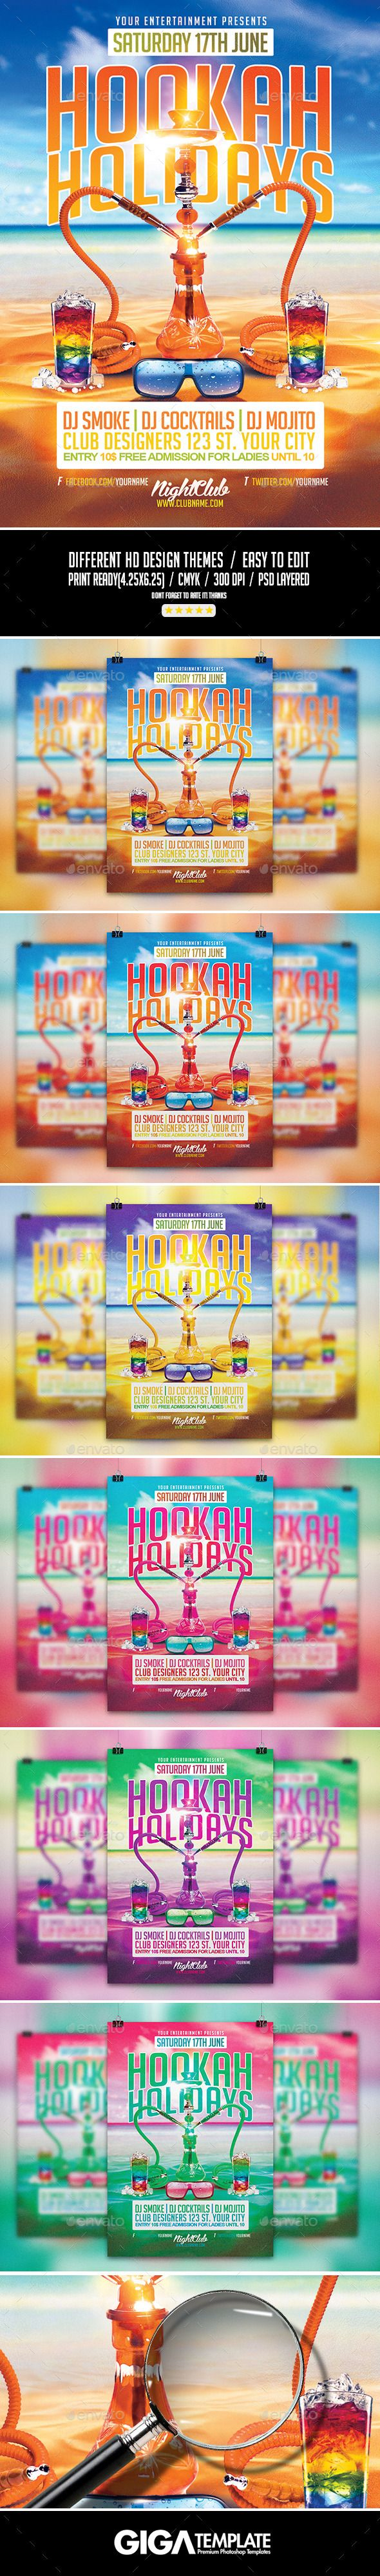 Hookah Holidays | Summer Party PSD Flyer Template